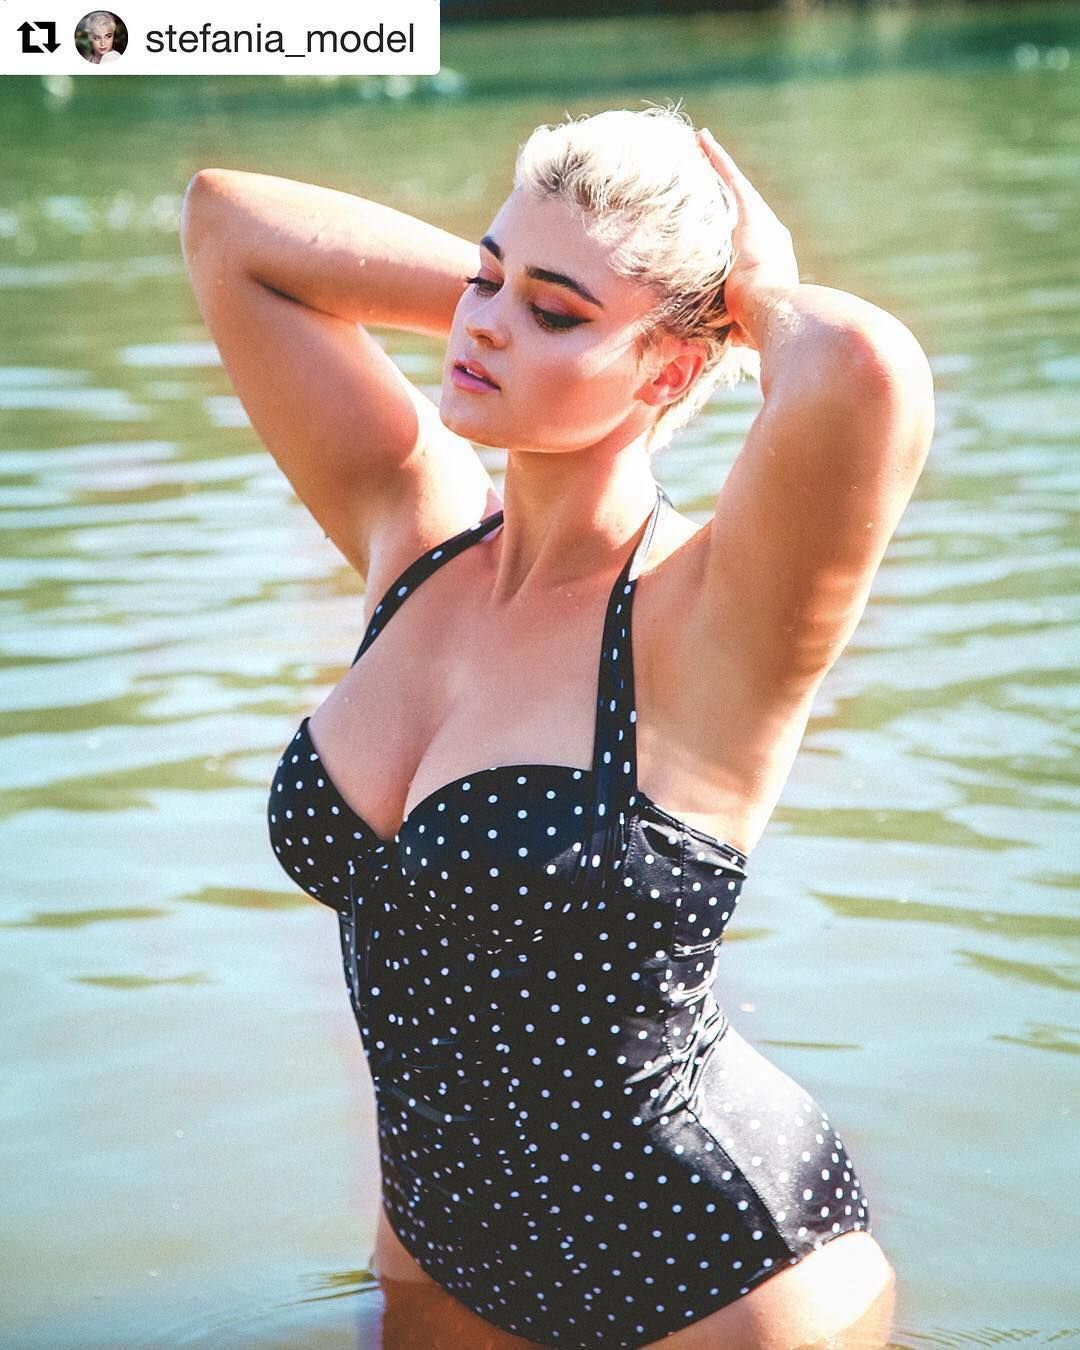 5b8038dafea Spotted  Stefania Ferrario in our Speckle Halter Underwire Swimsuit.  Repost